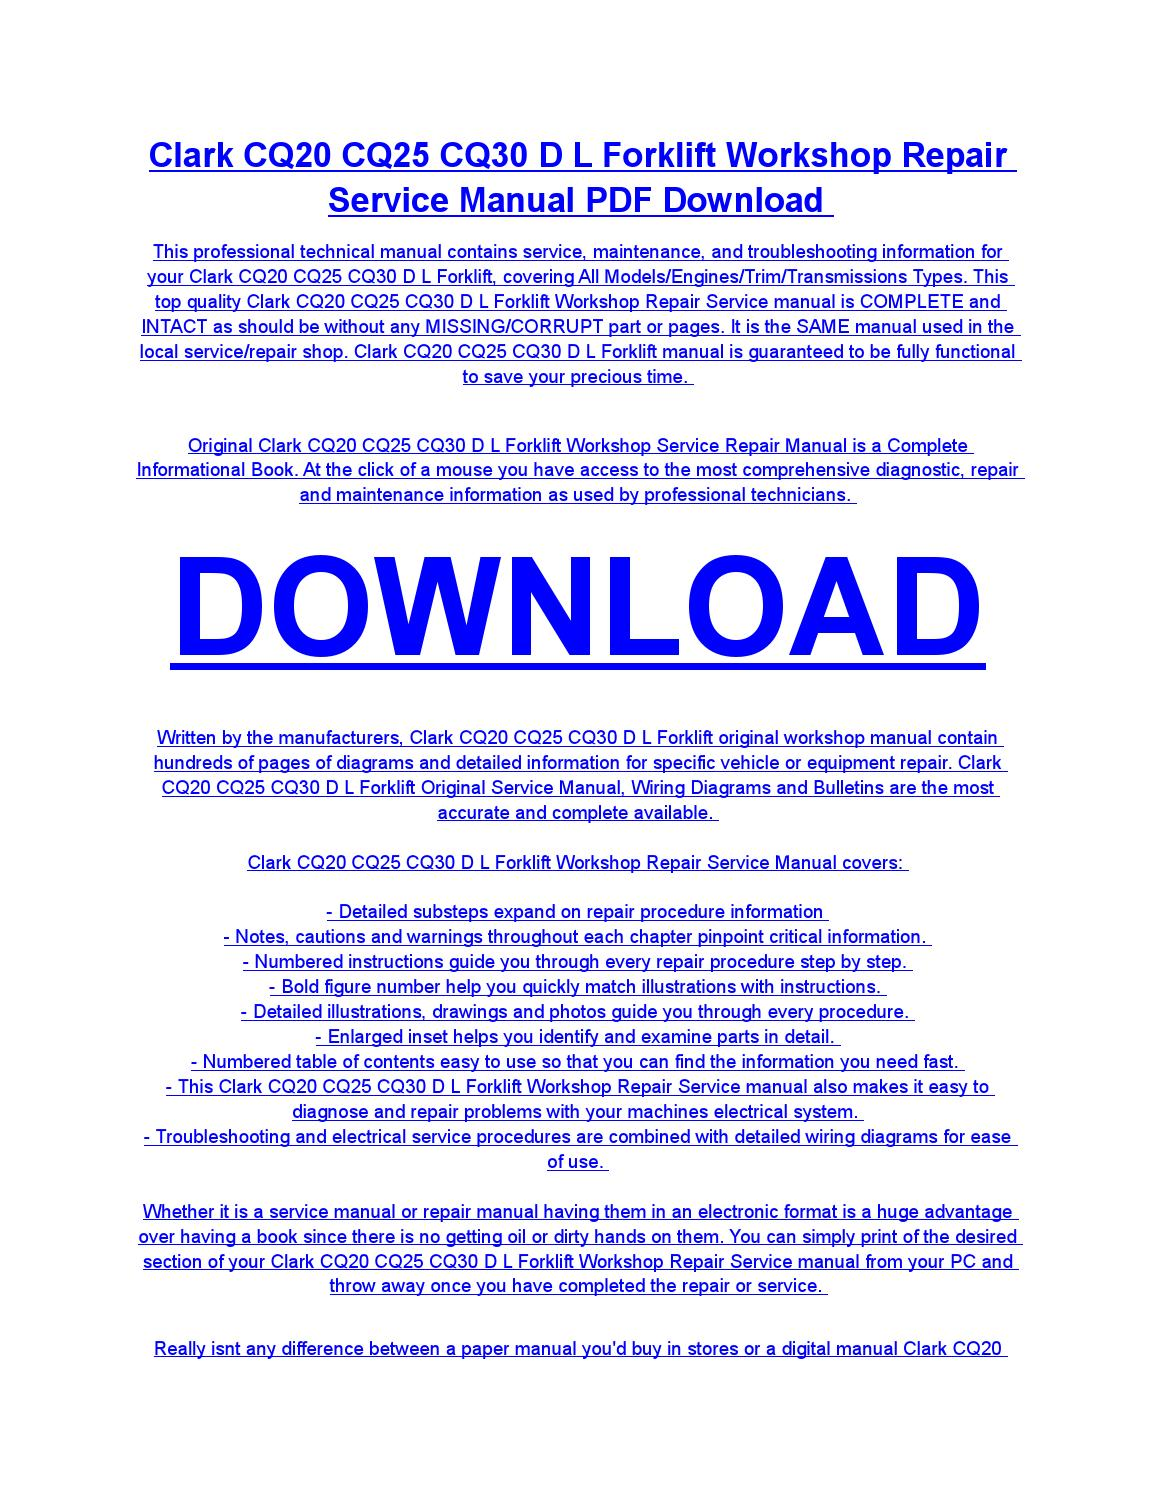 Clark cq20 cq25 cq30 d l forklift service repair workshop manual download  by diaz rondon - issuu